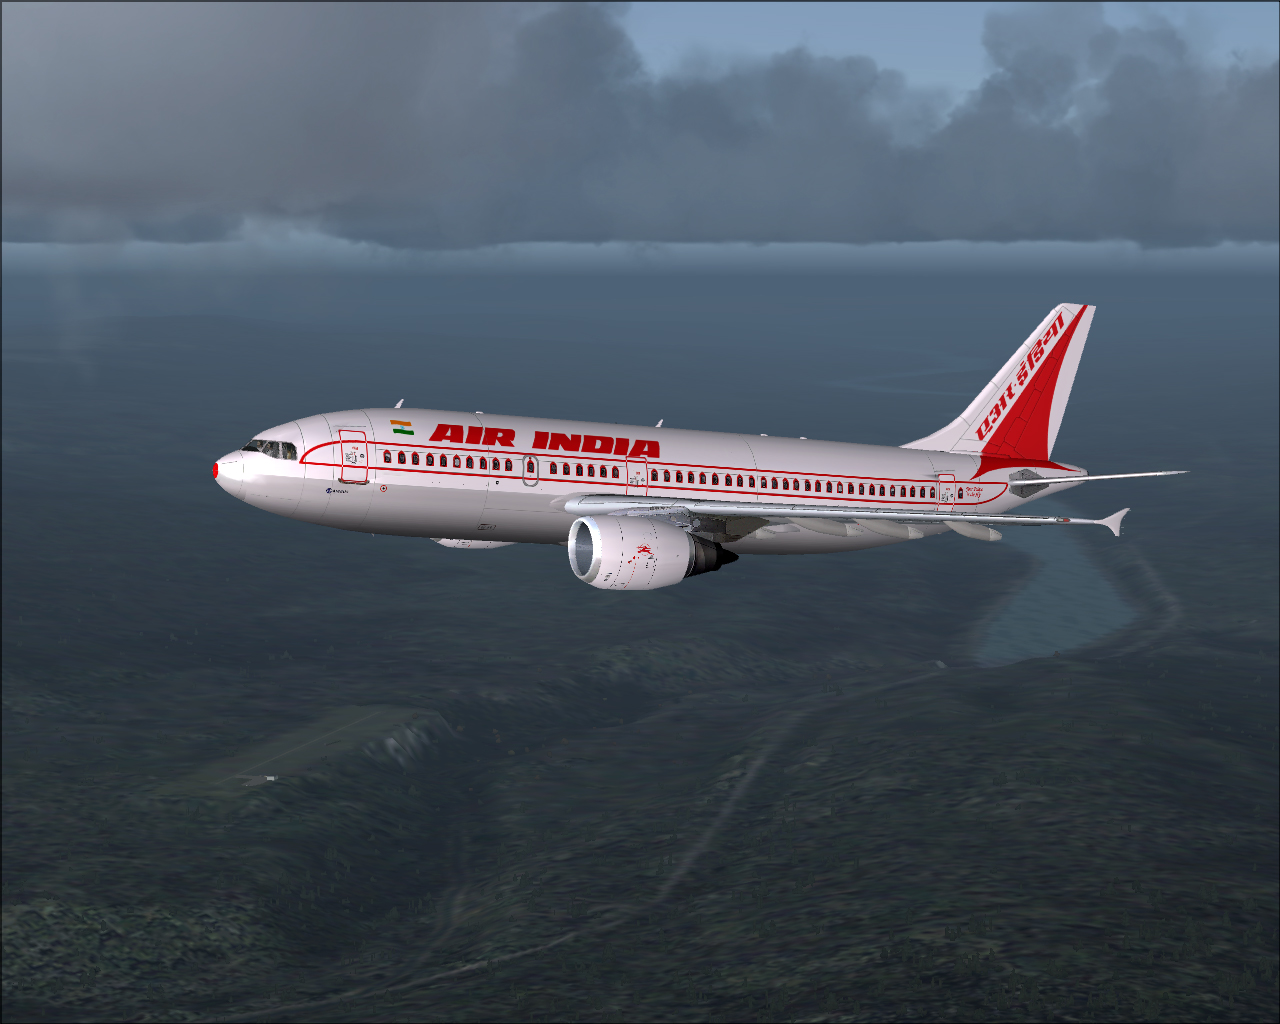 Download this Air India Airlines picture